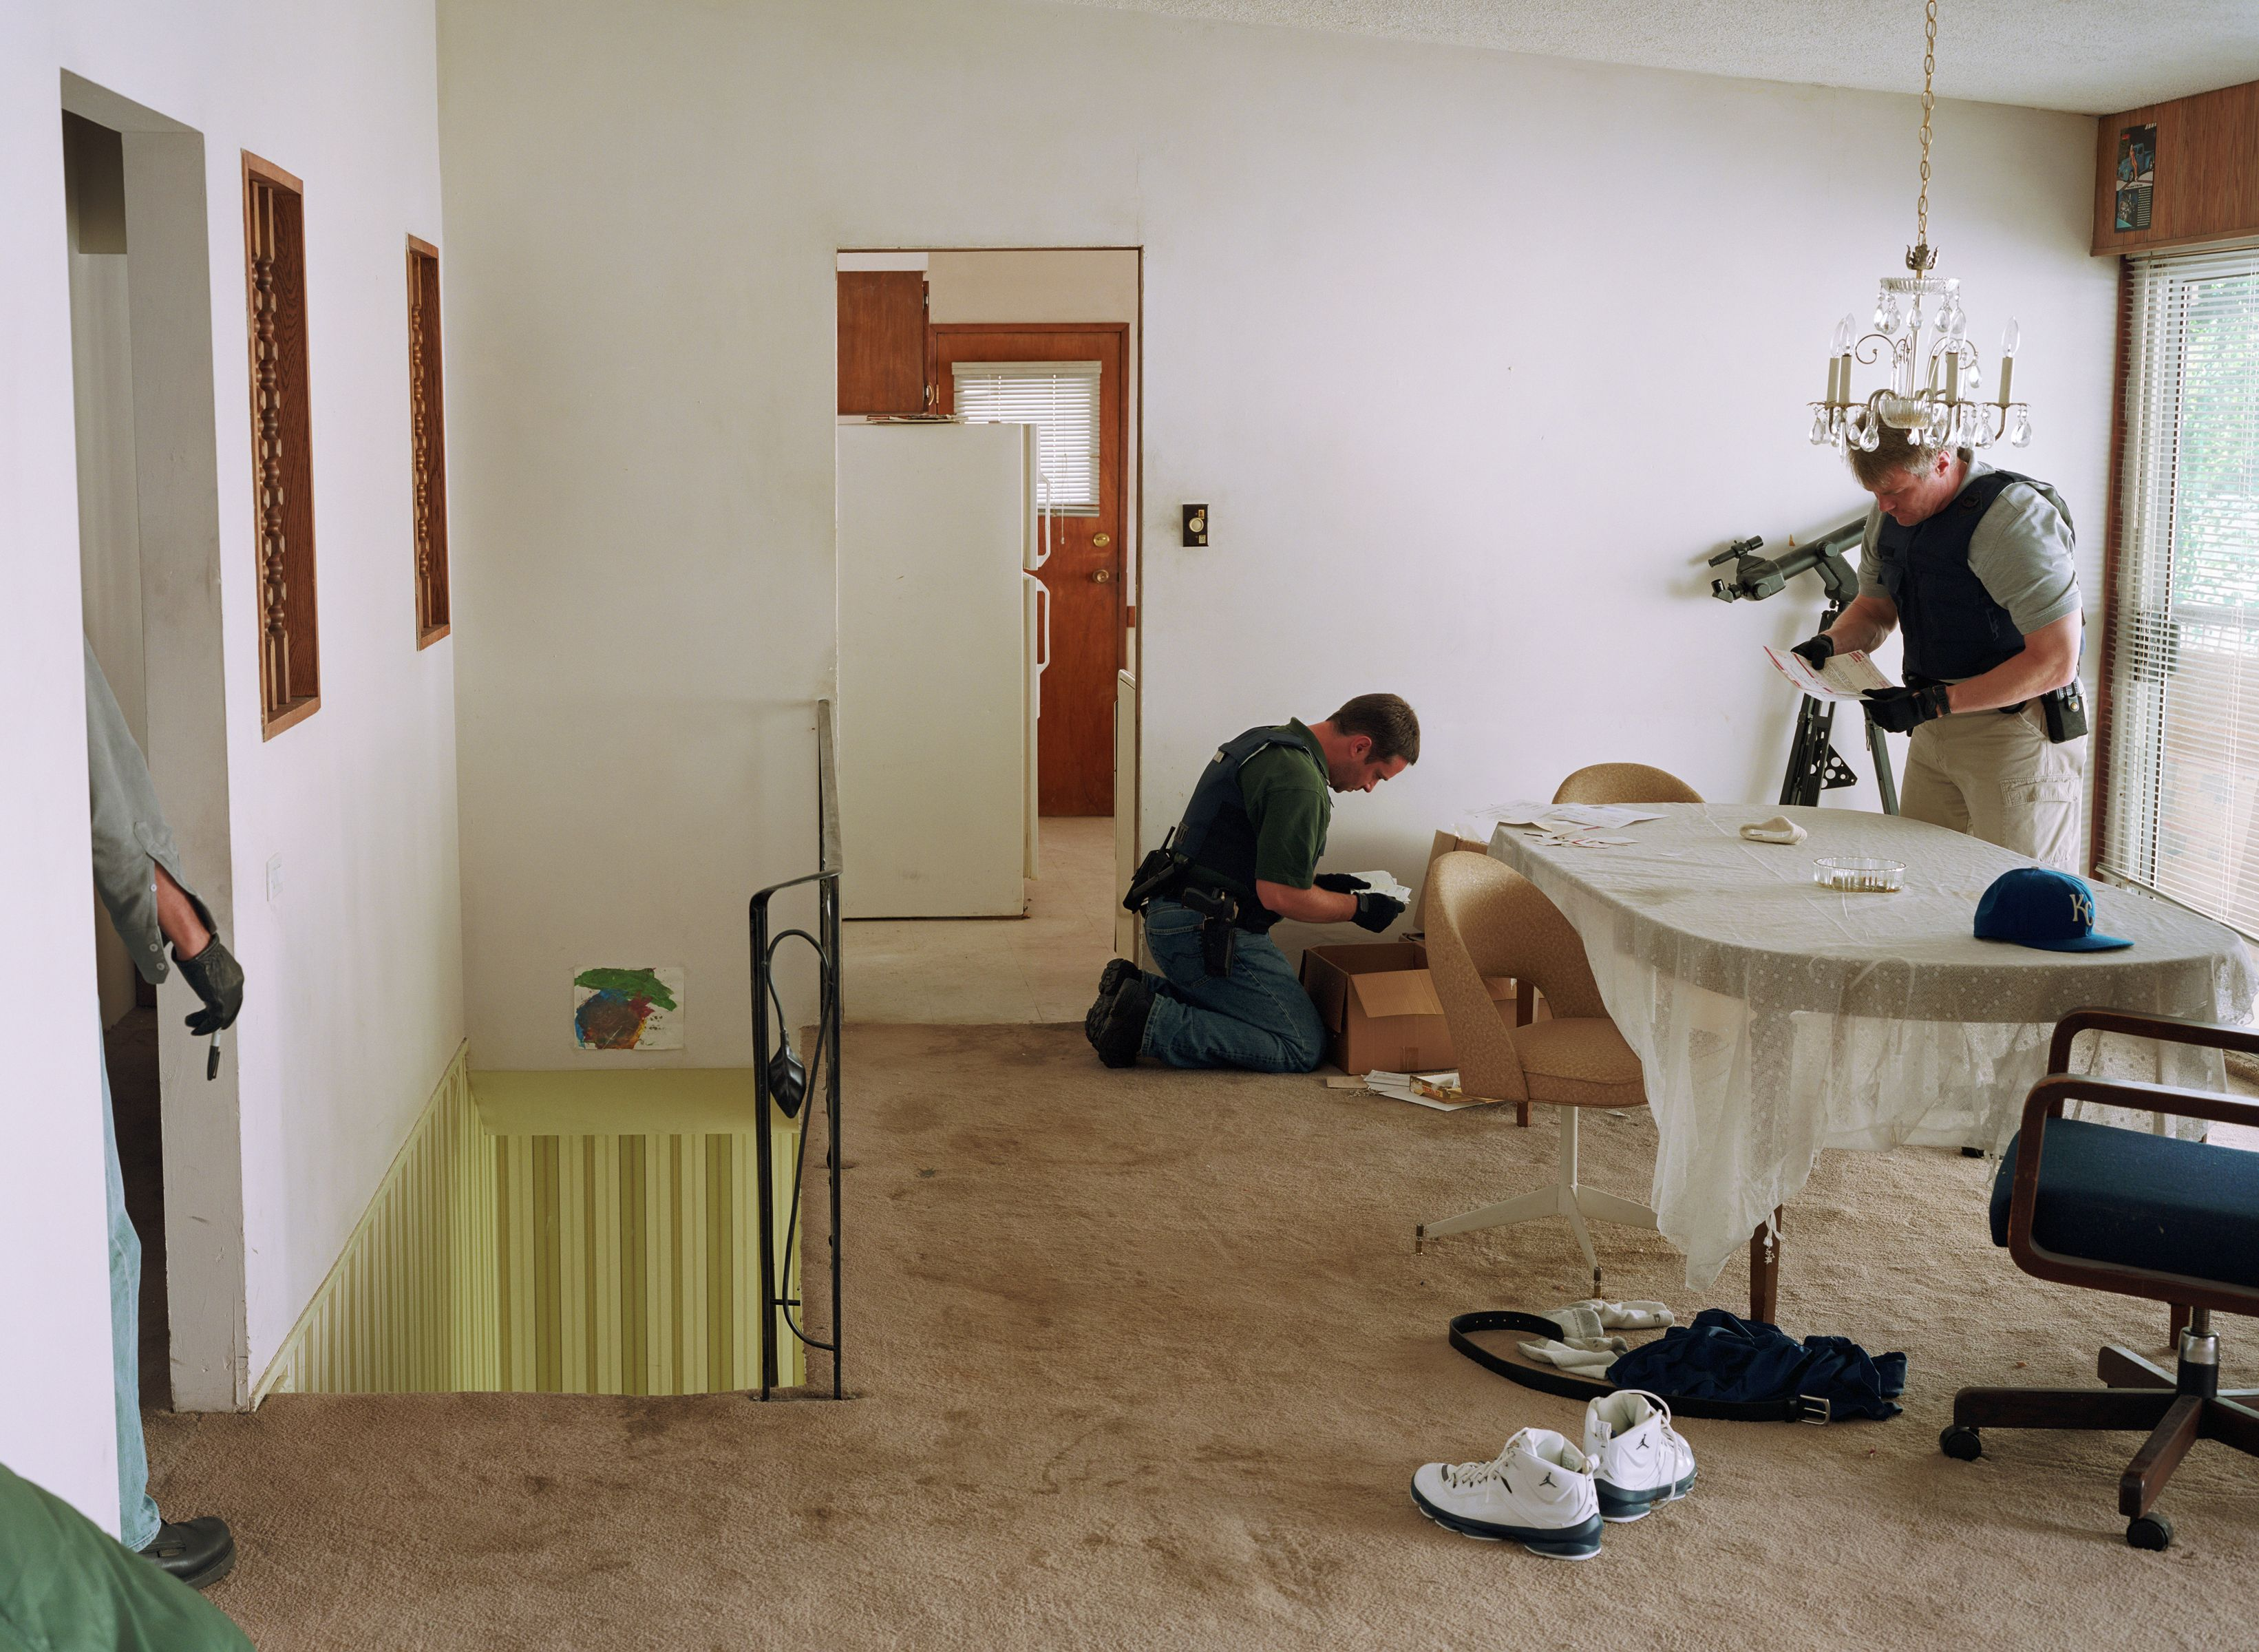 Jeff Wall, Search of Premises, 2009 Lightjet print, 192,3 x 263 cm courtesy the artist © Jeff Wall